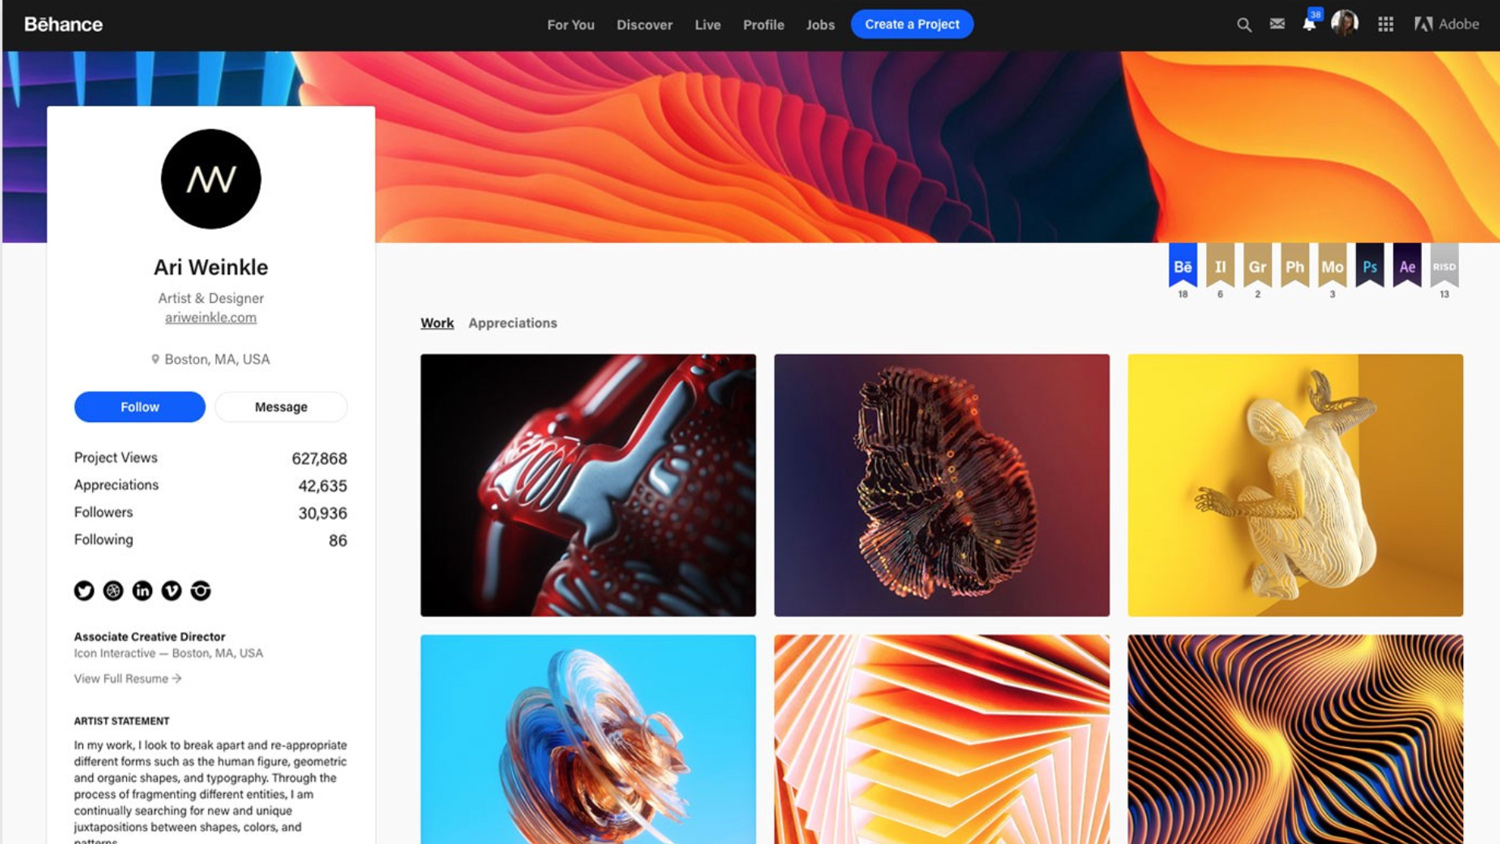 Write and publish a guest post on behance. net with 92